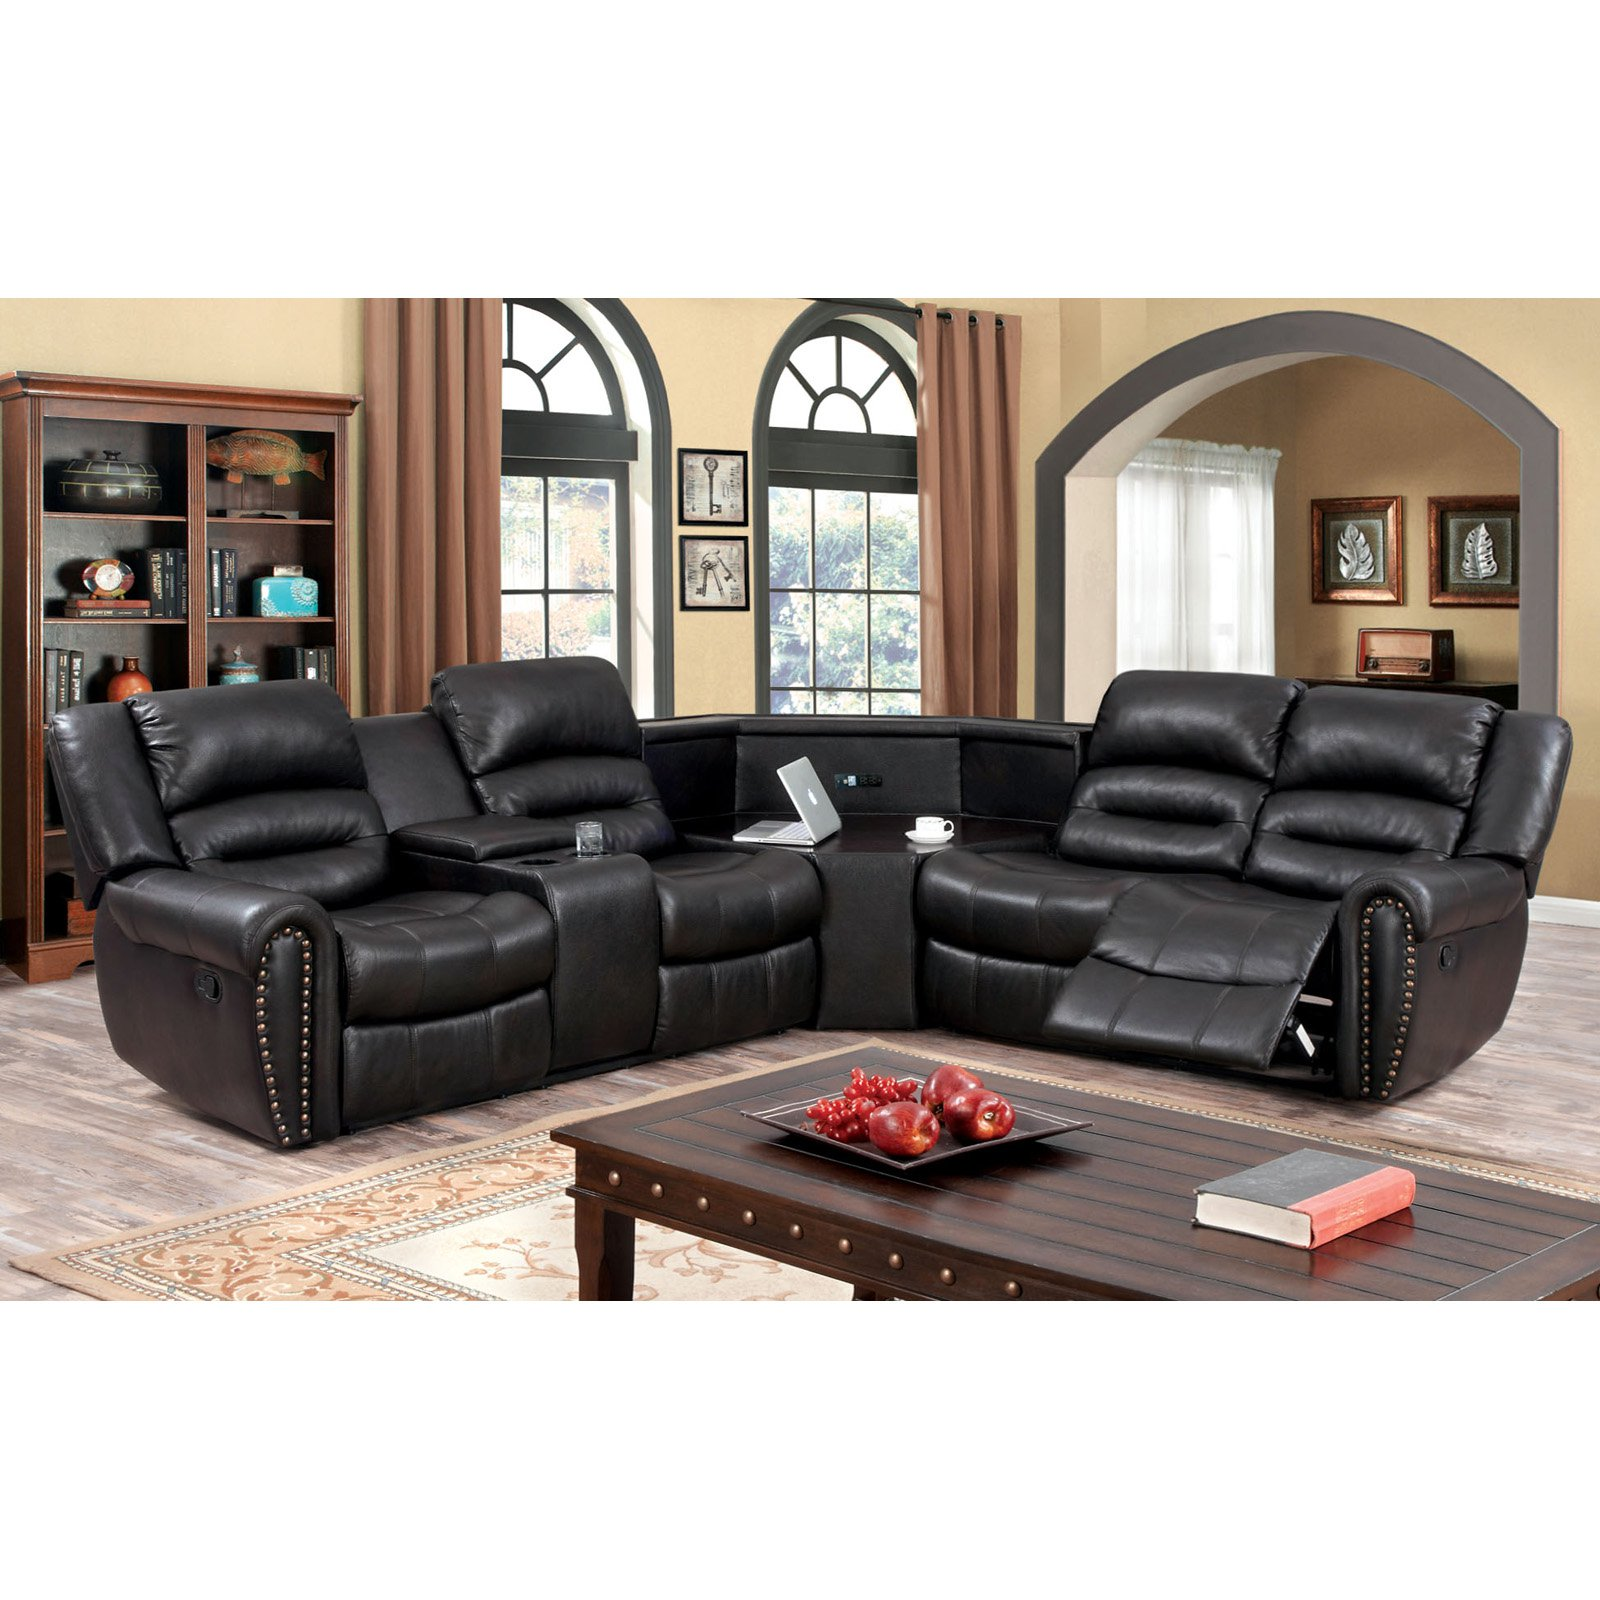 Furniture of America Mcclaran Sectional Sofa with Center Power Access Console